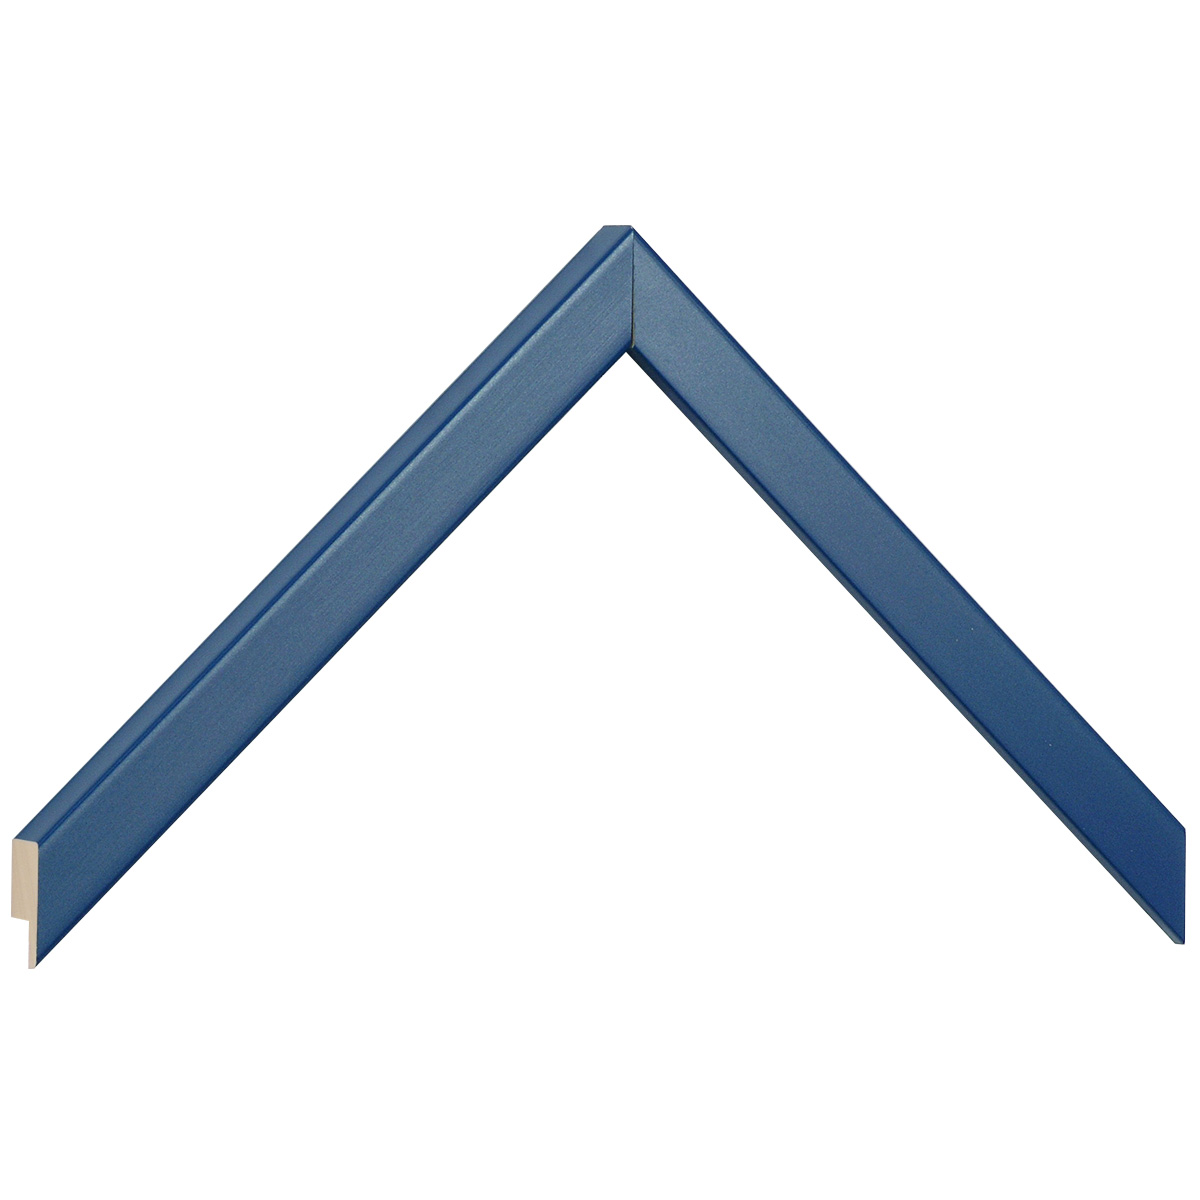 Moulding ayous width 15mm height 14 - blue